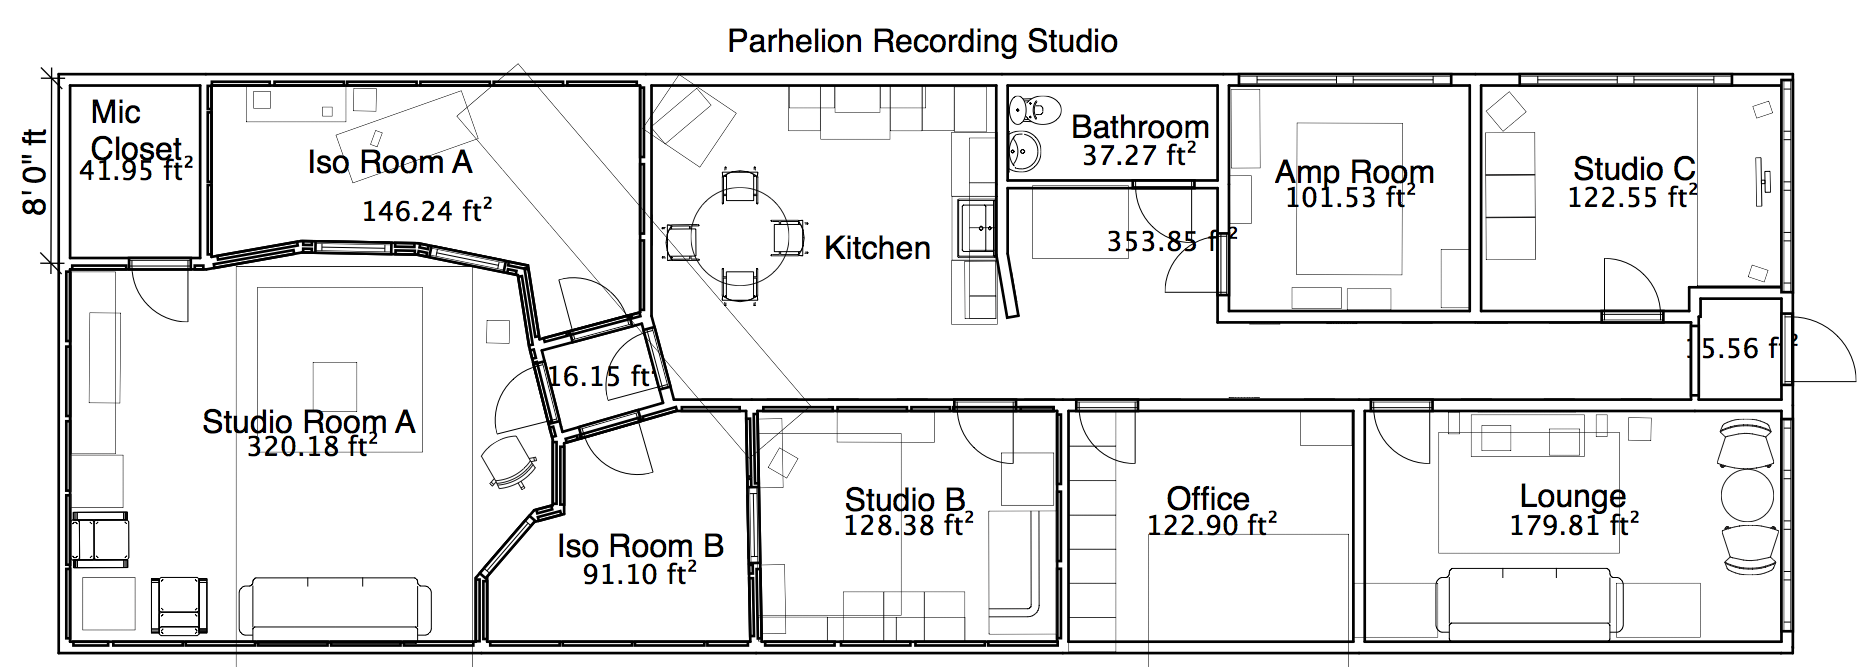 Studio layout parhelion recording studio atlanta for Studio layout plan